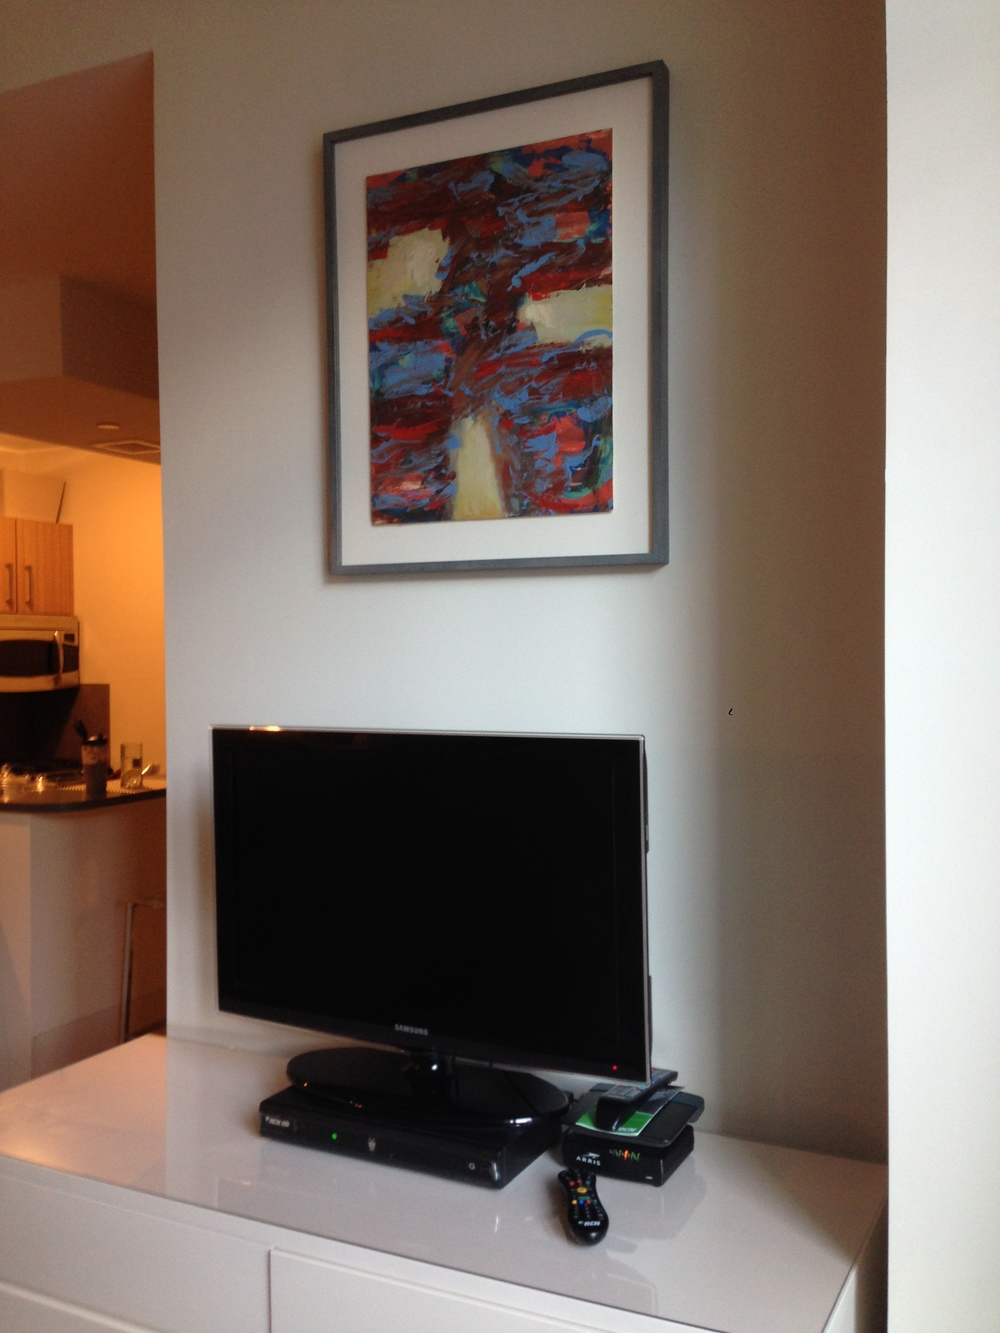 Small Painting 2-C, residential installation